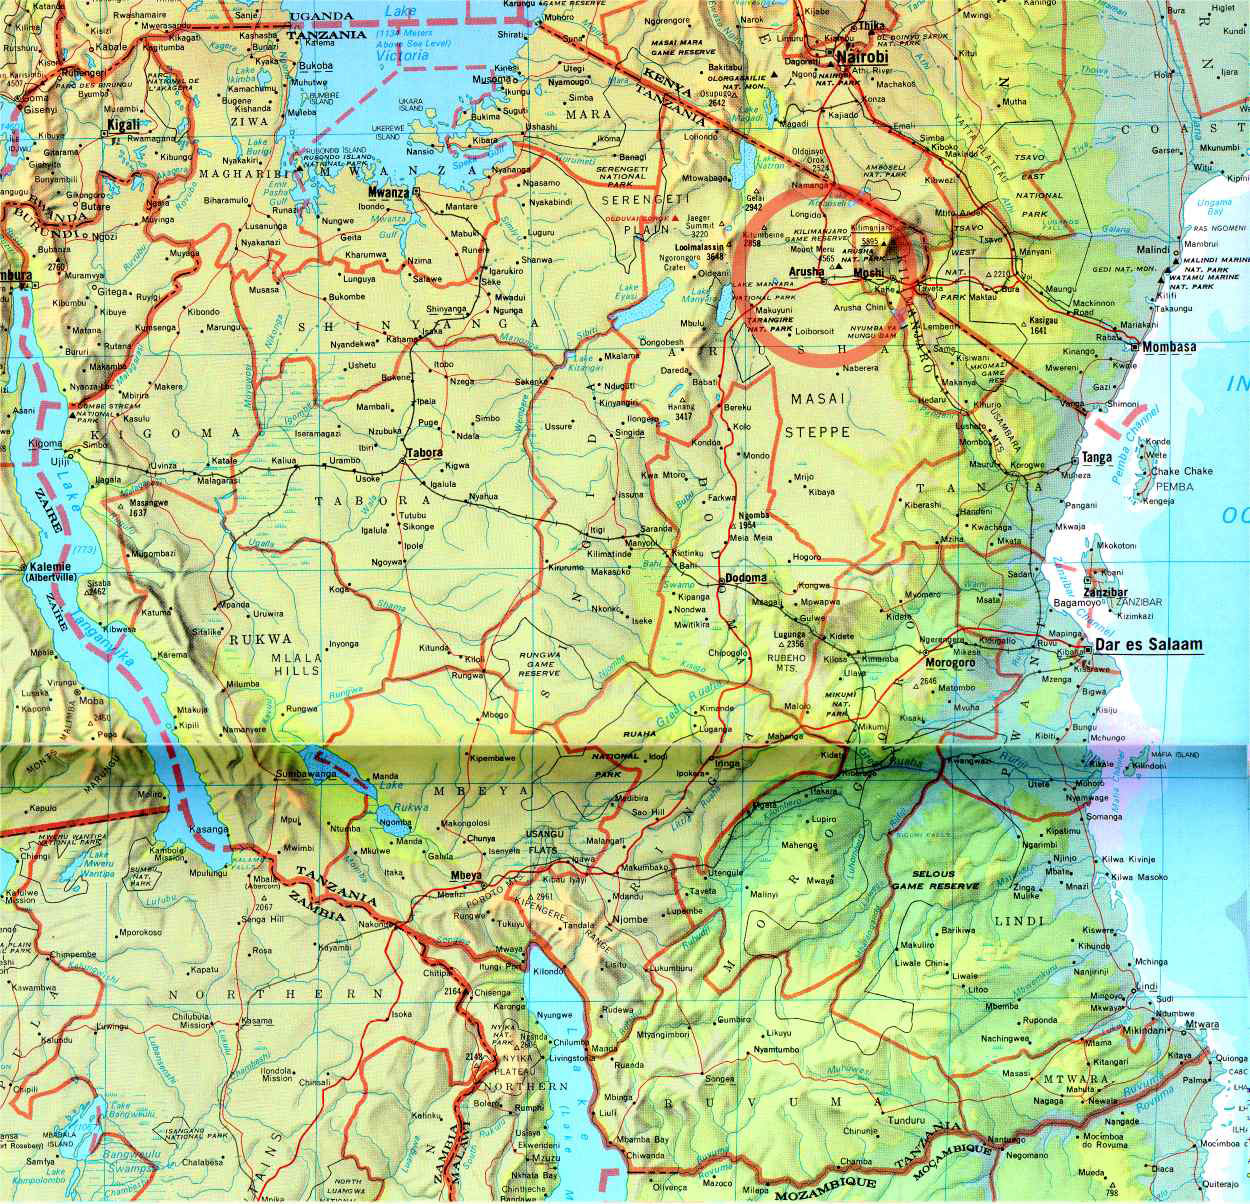 Tanzania Detailed Map Mapsofnet